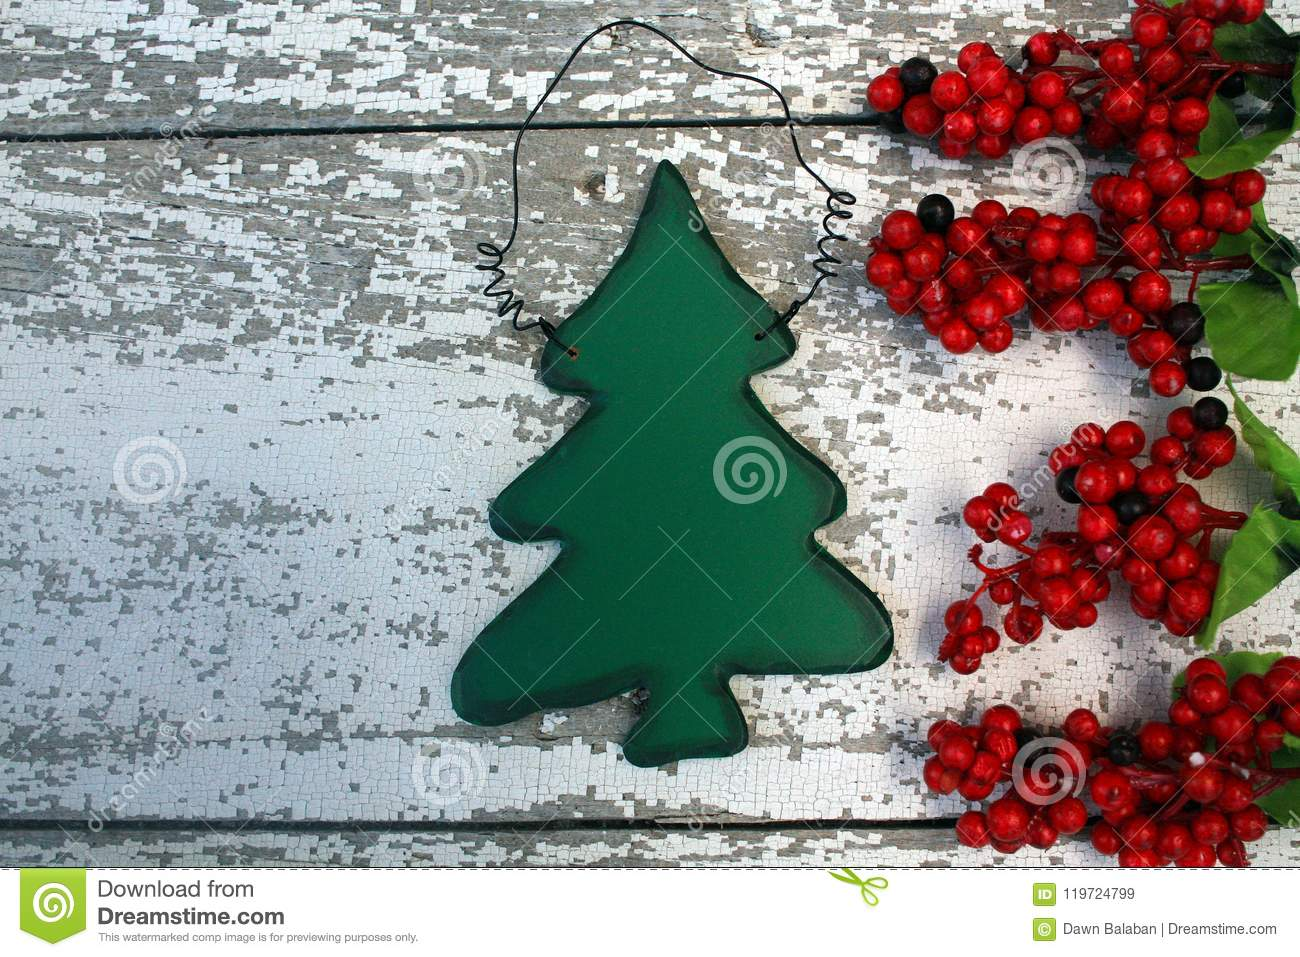 christmas tree decoration on white background with red berries - Red Berry Christmas Tree Decorations